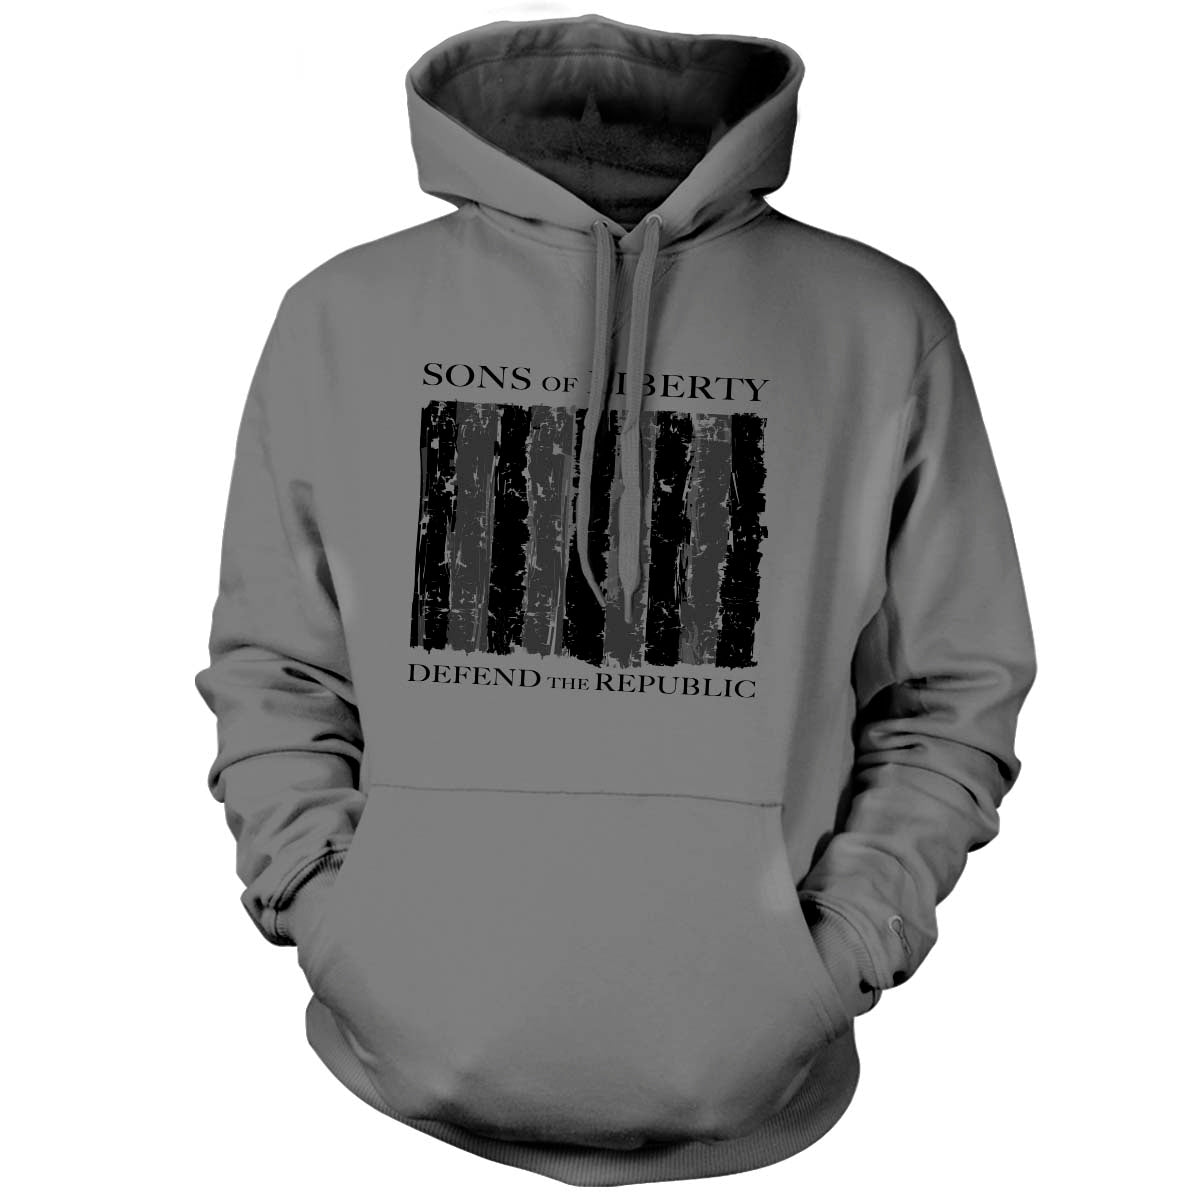 Sons of Liberty - Defend the Republic - Hoodie - Grey - T-Shirts - Pipe Hitters Union